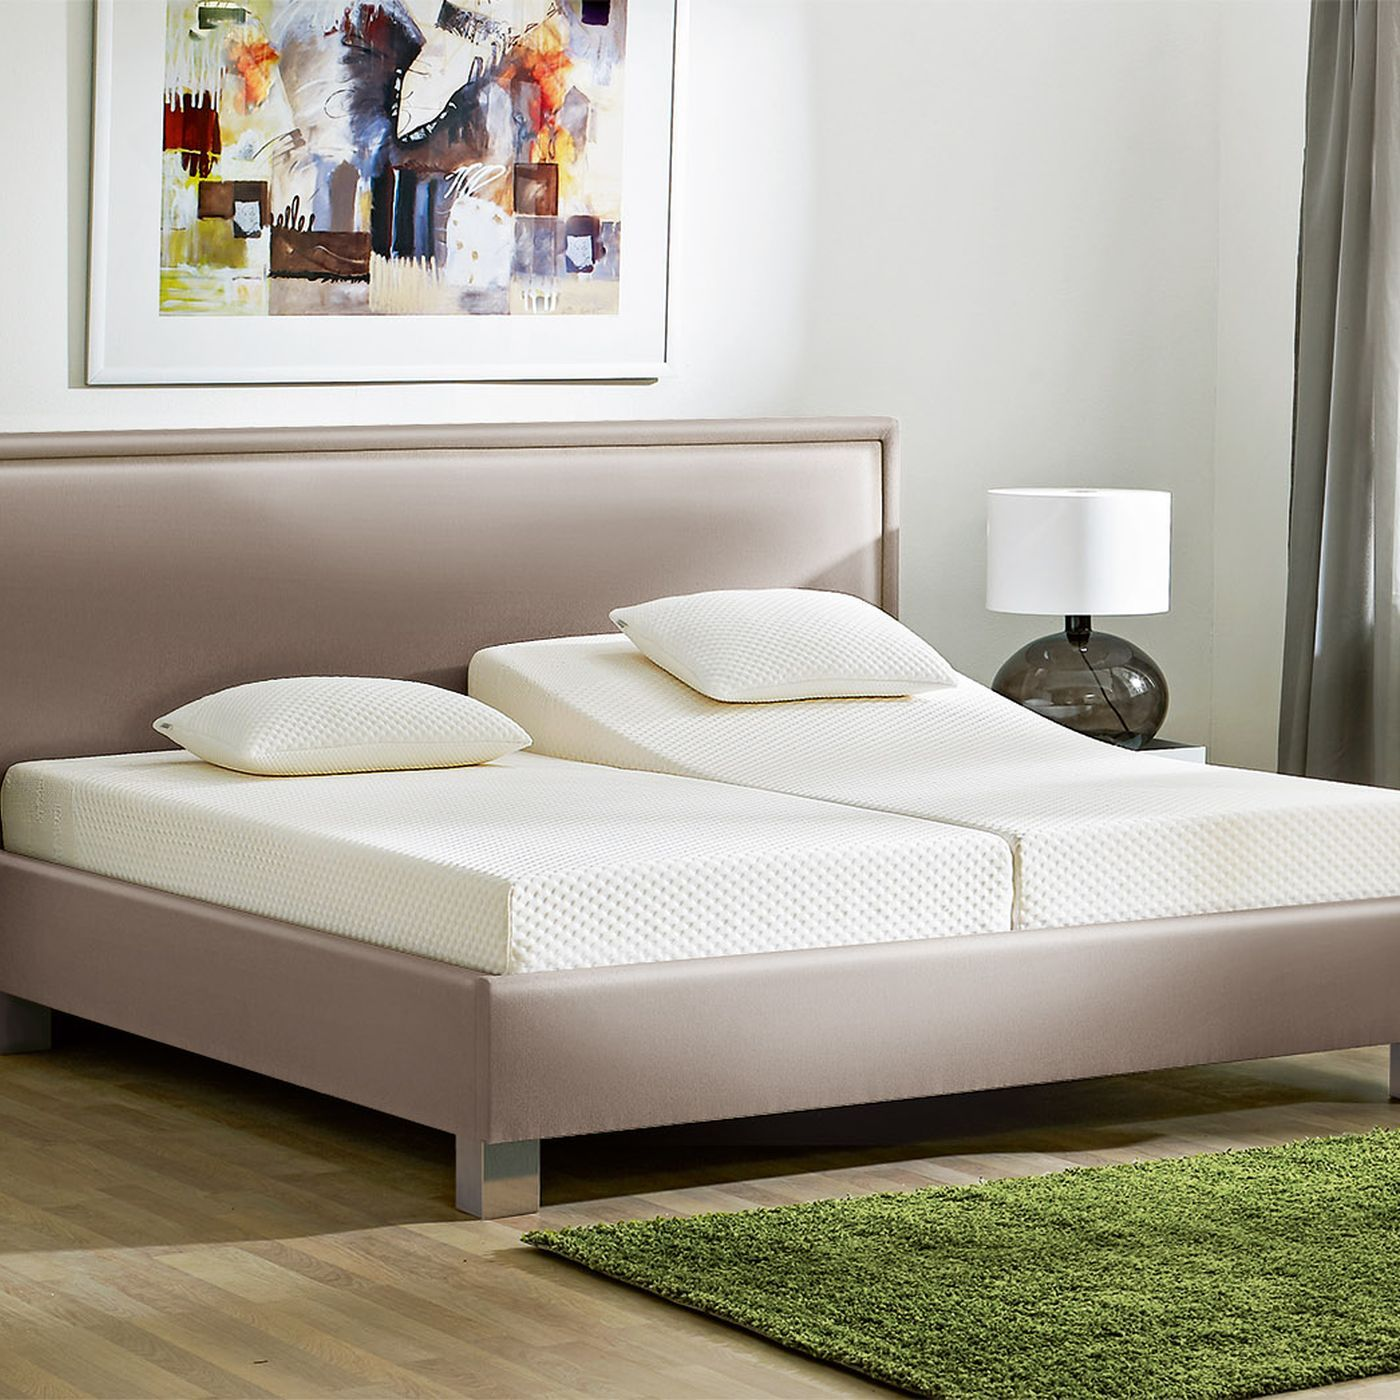 Tempur Betten Berlin Tempur Prestige Betten Shallow Ff Beds Bed